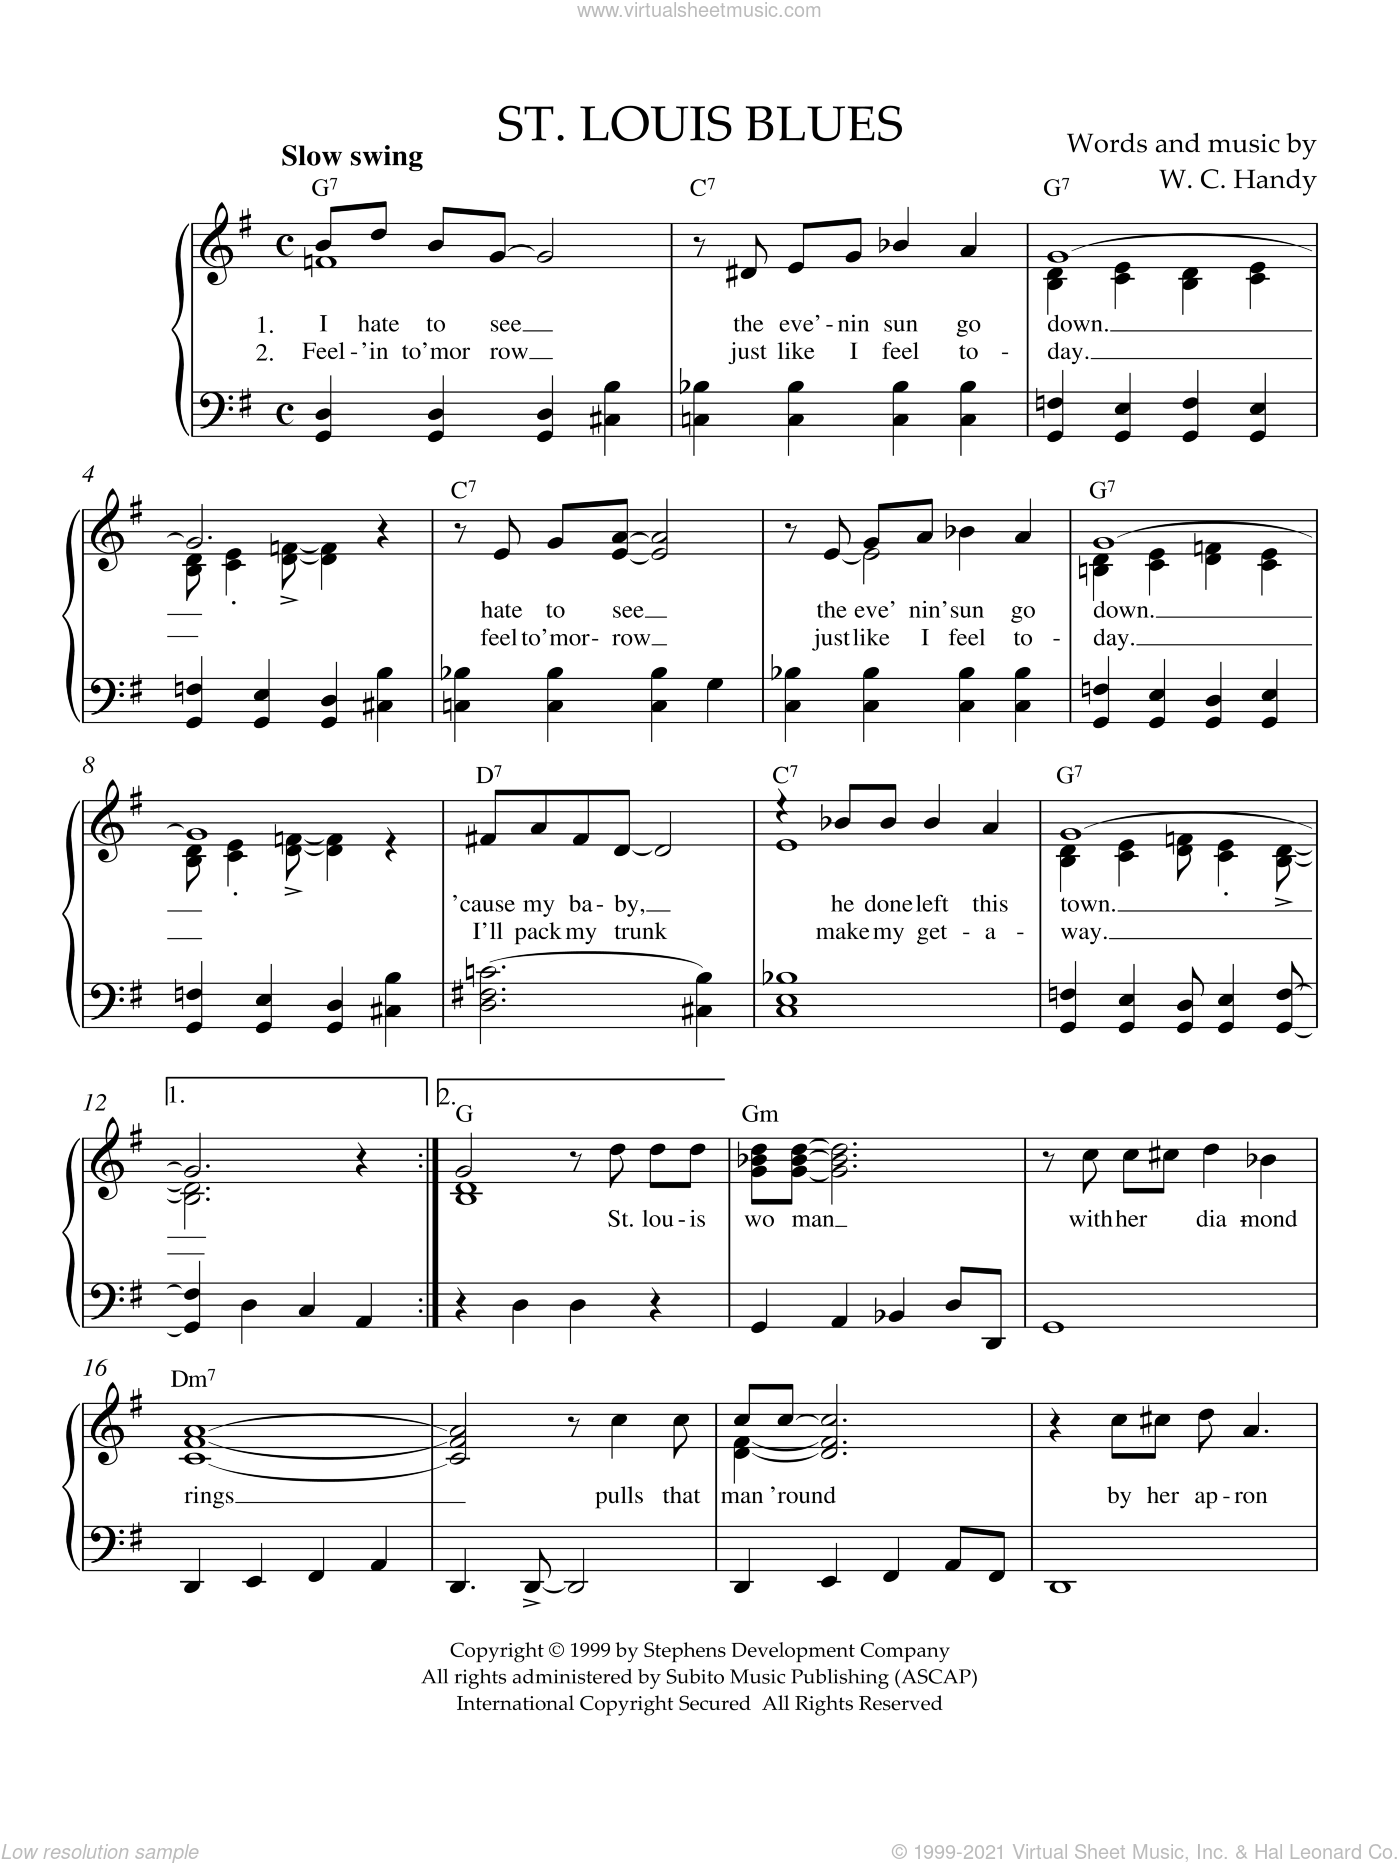 St. Louis Blues sheet music for piano solo by W.C. Handy